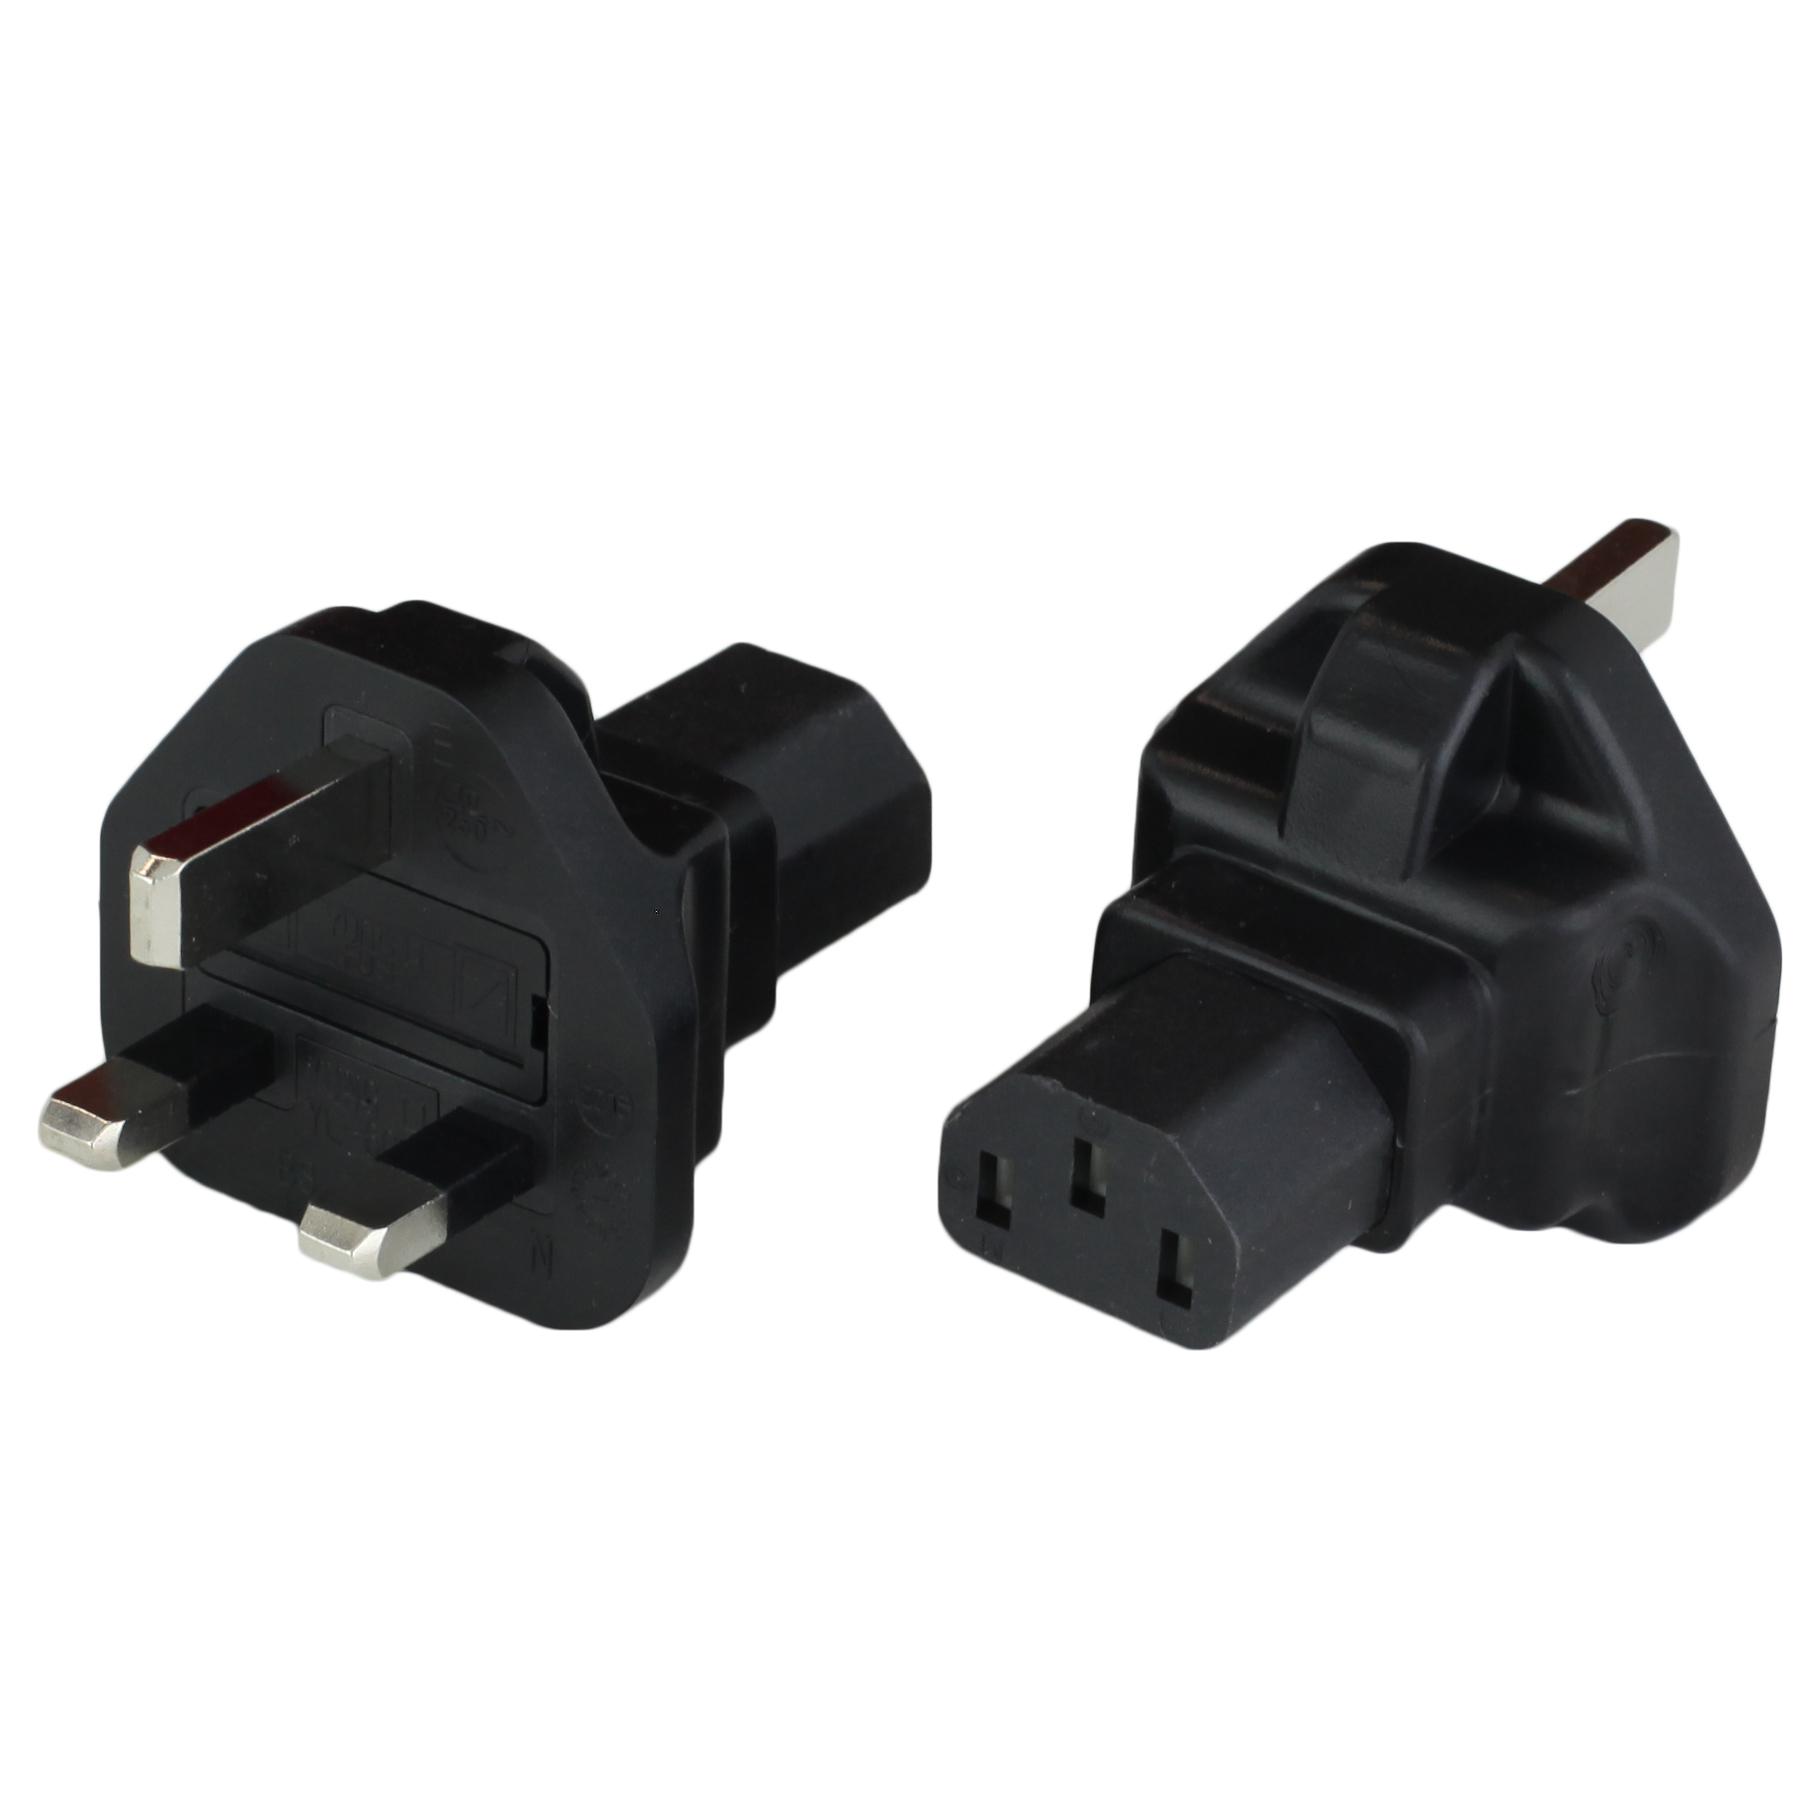 <p>Adapter UK BS1363 Plug to IEC60320 C13 10A 250V - BLACK. United Kingdom (British) BS1363 3-Pin Type G plug rated up 13 Amps 250 VAC. Use this for converting a UK BS1363 (female) outlet to a C13 (female) outlet. This would allow you to plug your IEC60320 C14 (male) into the C13. Possibly places the BS1363 outlet may be  used in United Kingdom, Bahrain, Brunei, Cyprus, Gambia, Grenada, Kenya, Malawi, Malta, Seychelles, Singapore, Uganda.</p>